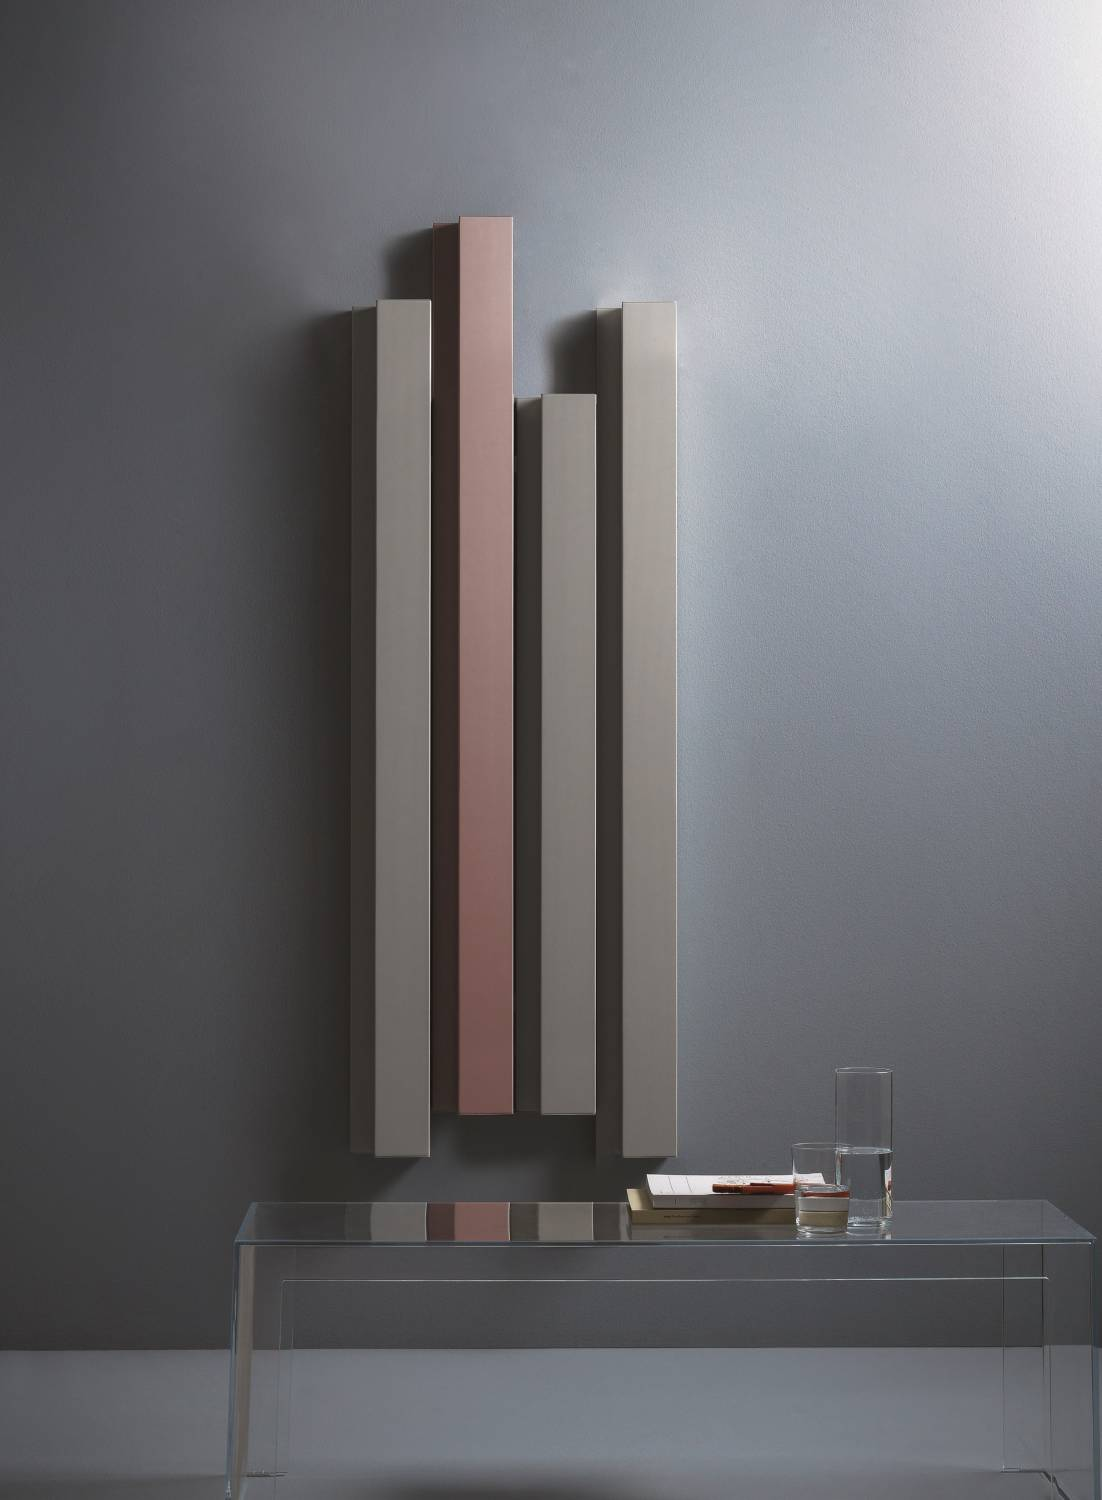 Rift radiator by Tubes | on Flodeau.com